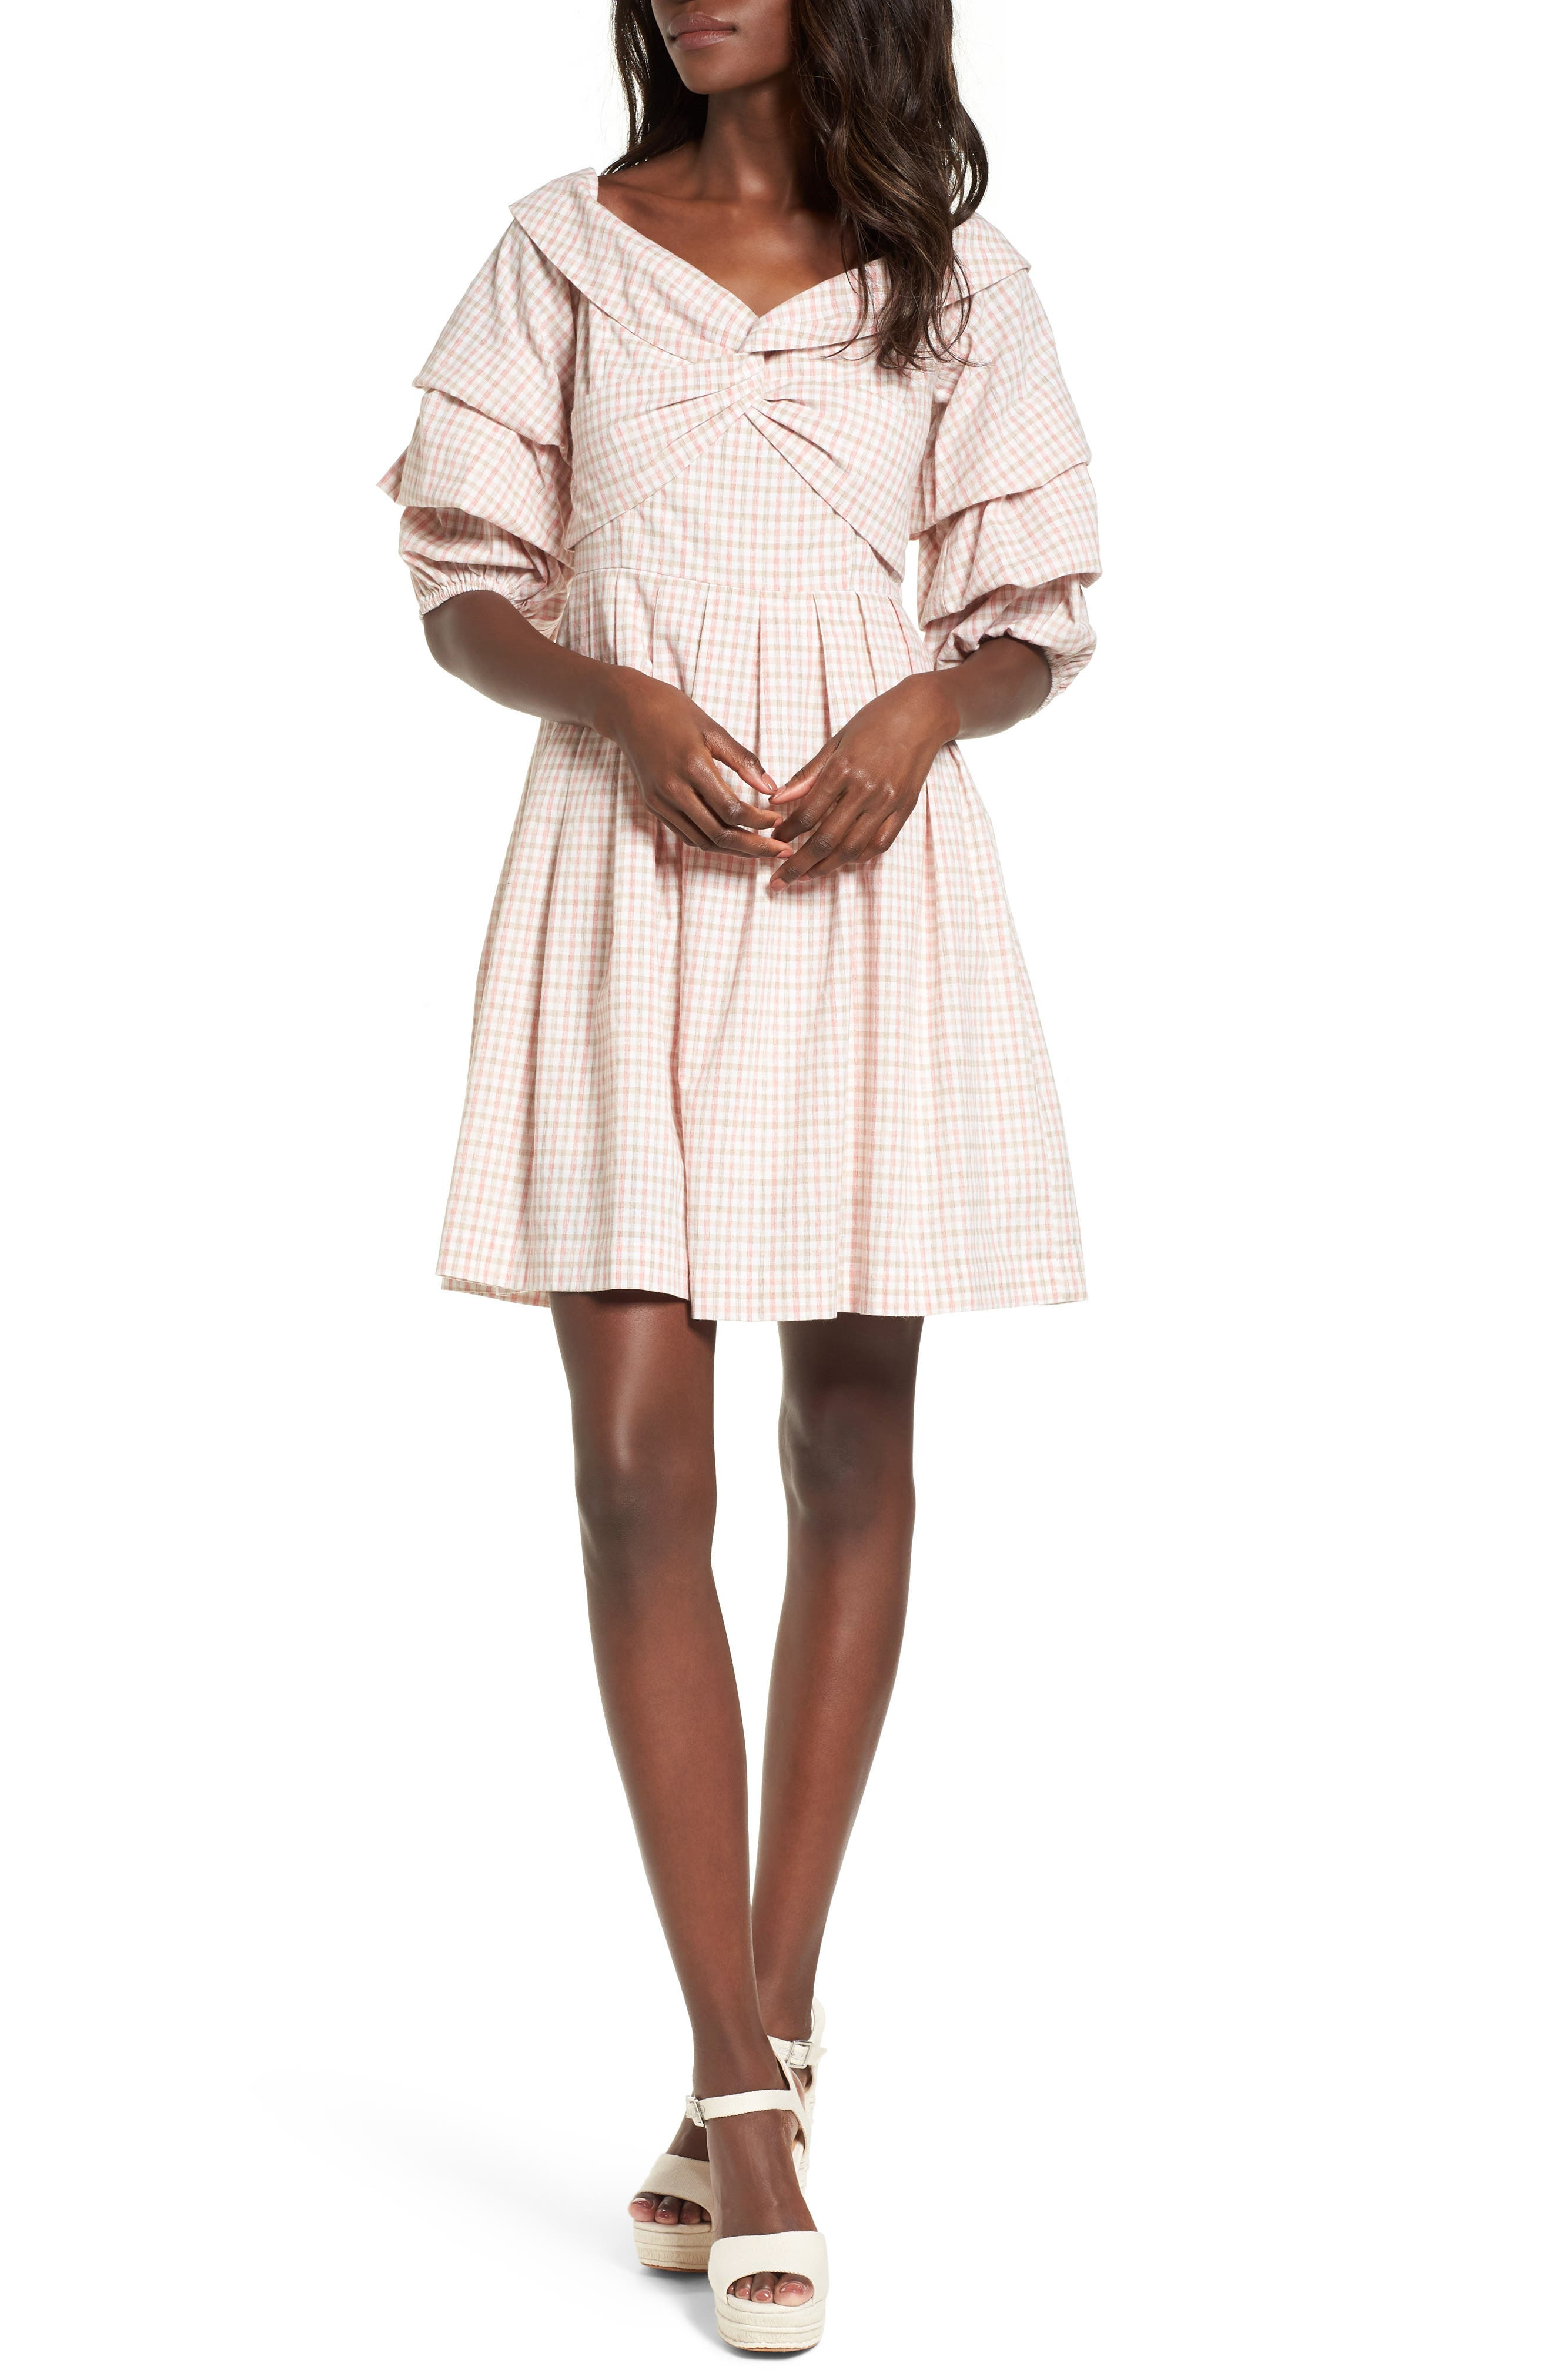 Chriselle x J.O.A. Tiered Sleeve Minidress,                             Main thumbnail 1, color,                             650